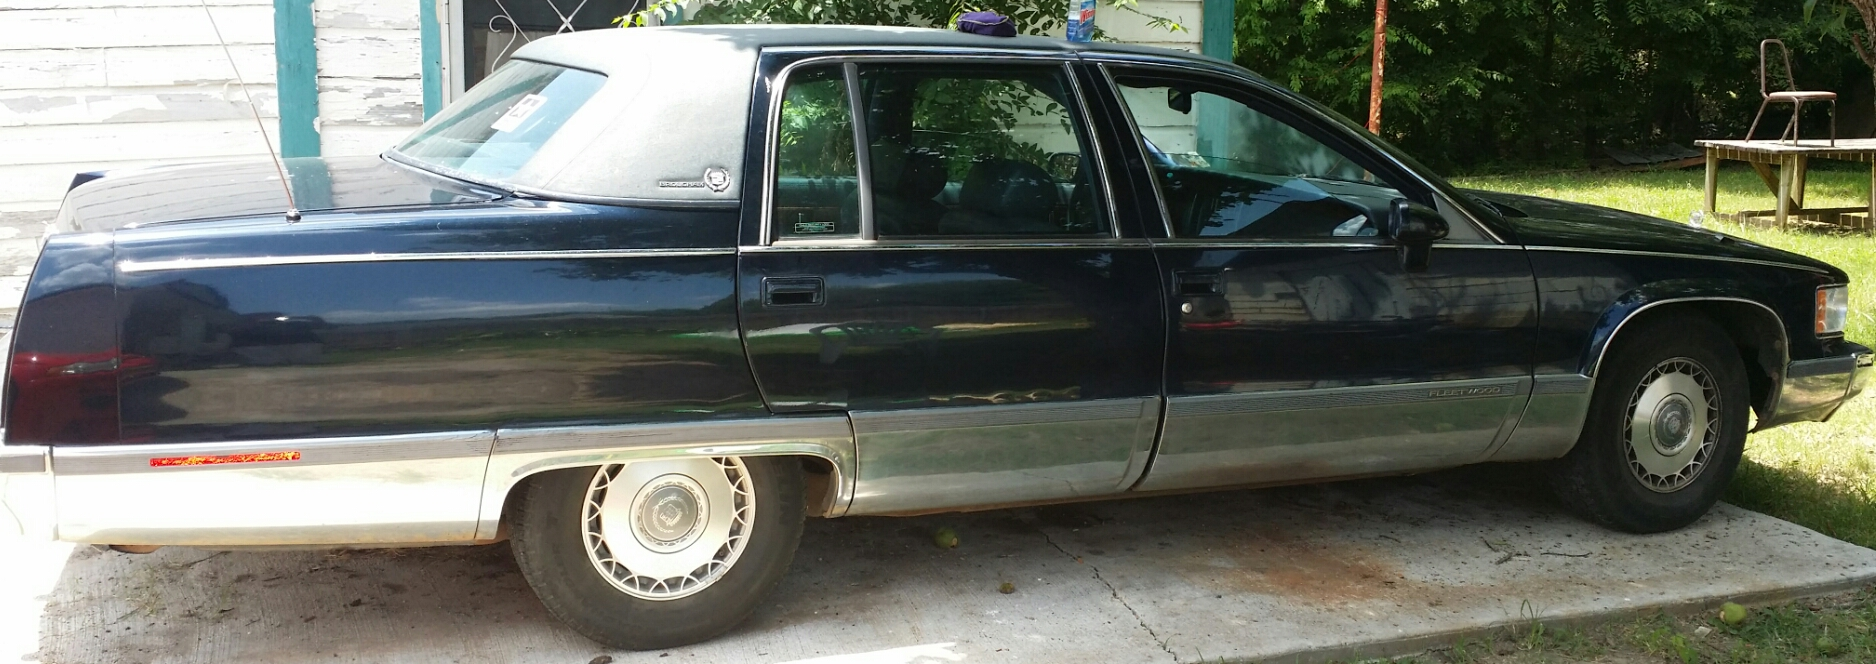 New addition to the family. 1993 fleetwood brougham.  - 19064641